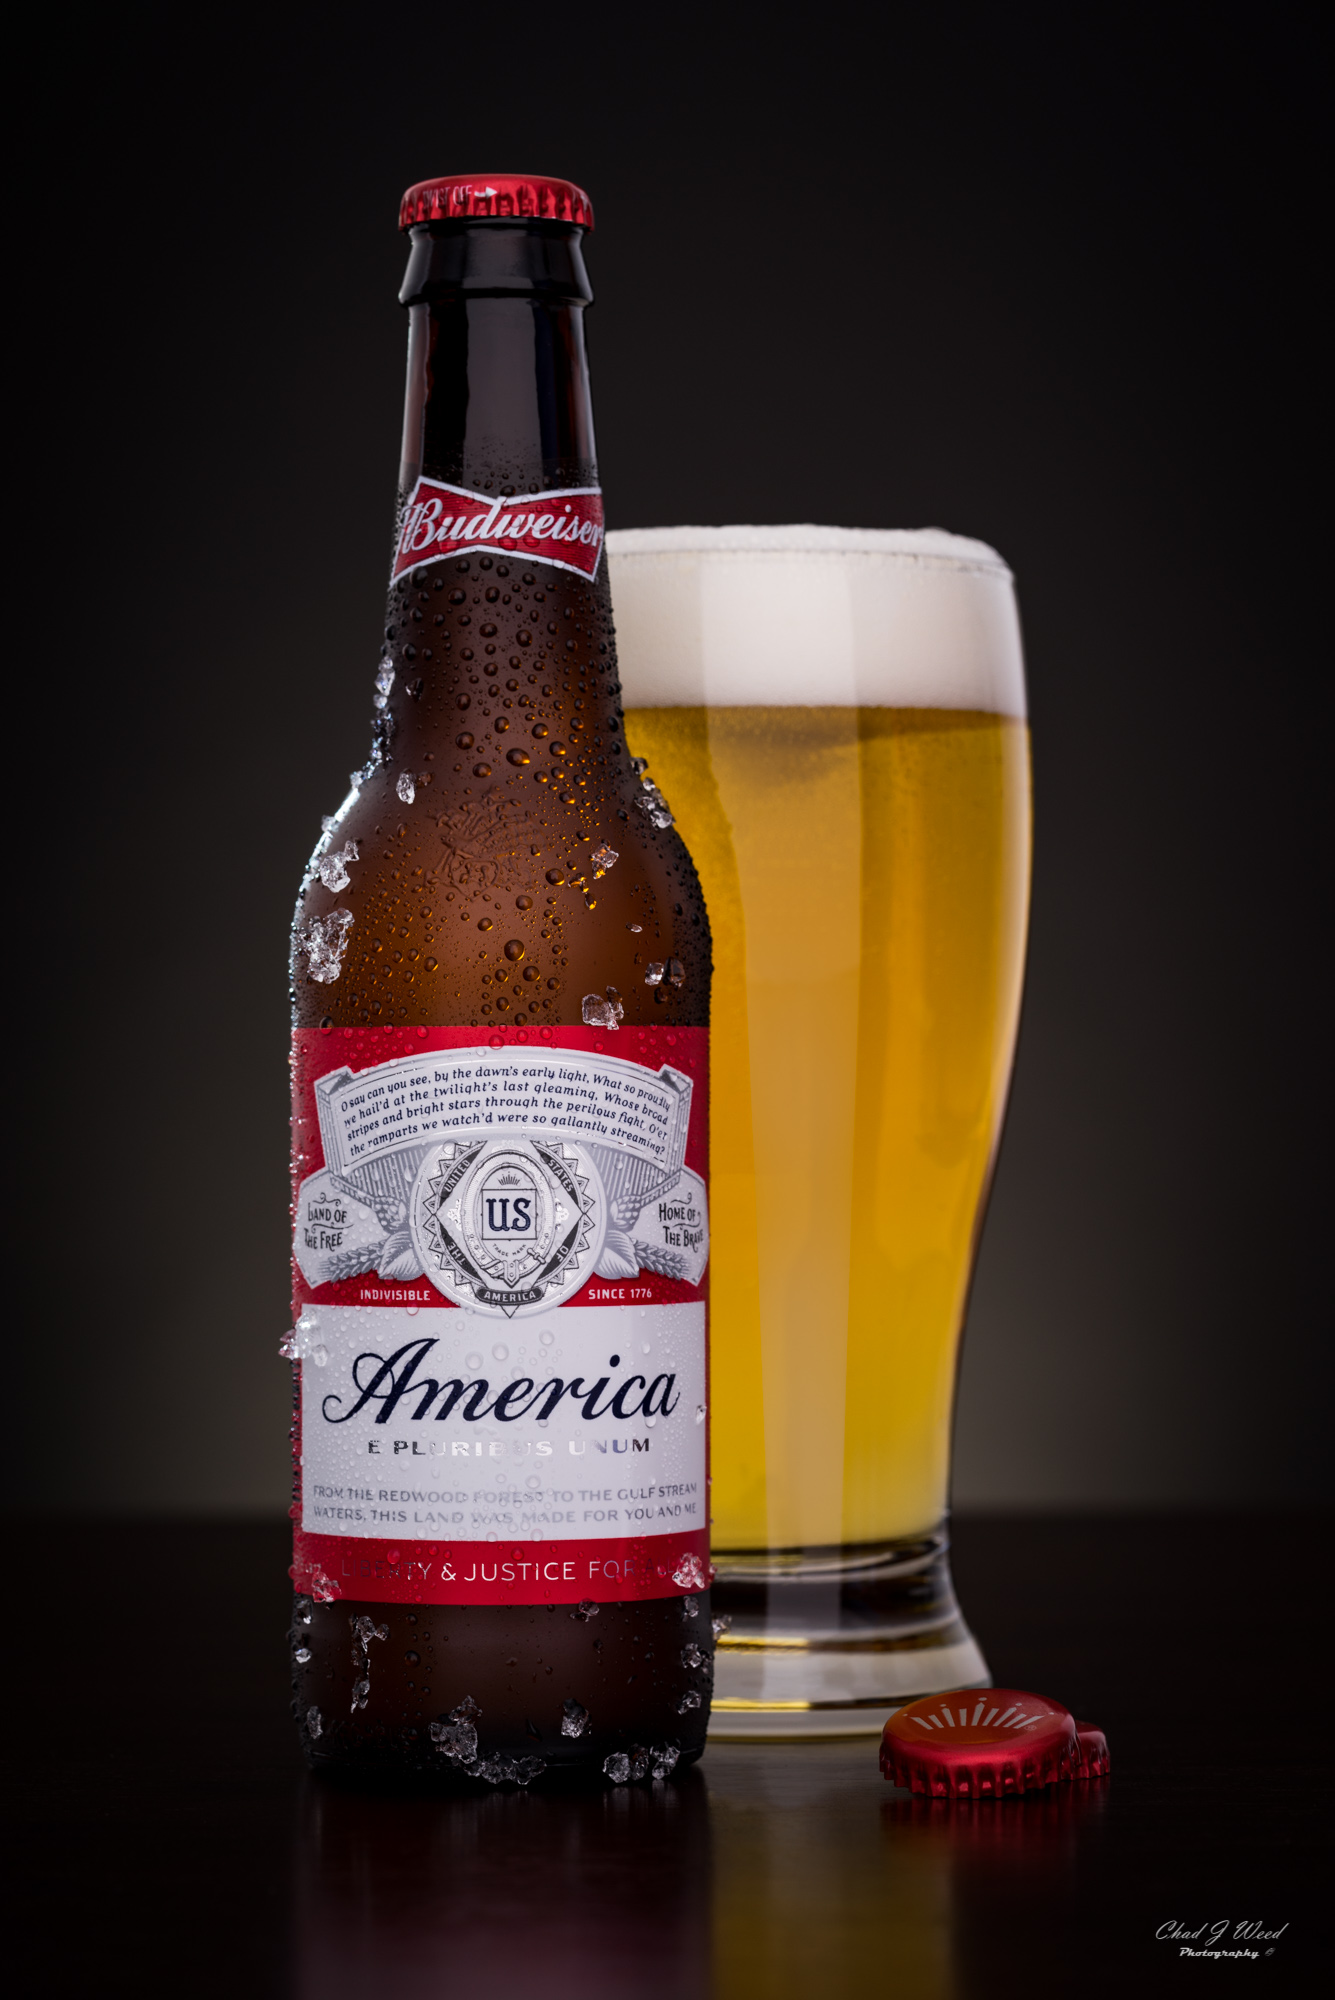 Budweiser America Beer Bottle by Arizona Commercial Beverage Photographer Chad J Weed